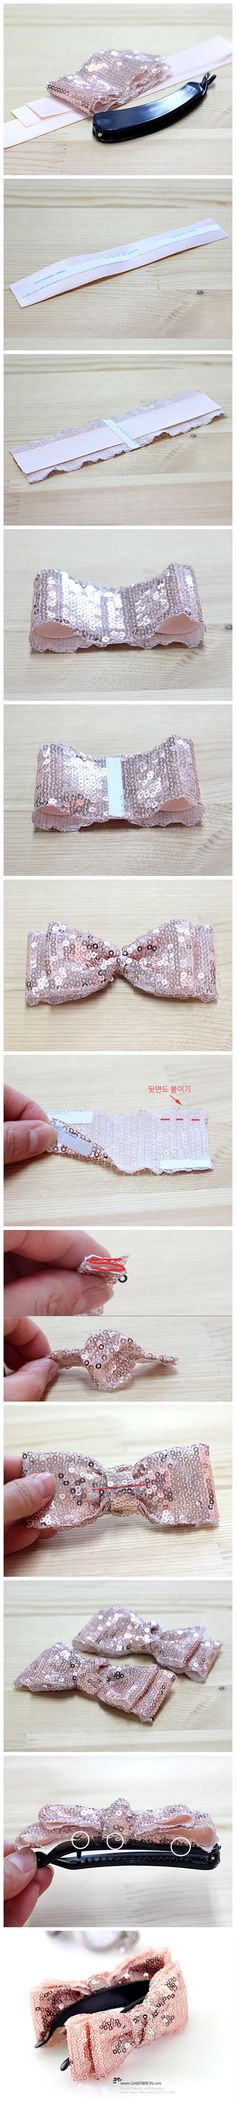 Tutorial handmade DIY handmade bow hair accessories BlingBling classic sequins elements, so bow more ...